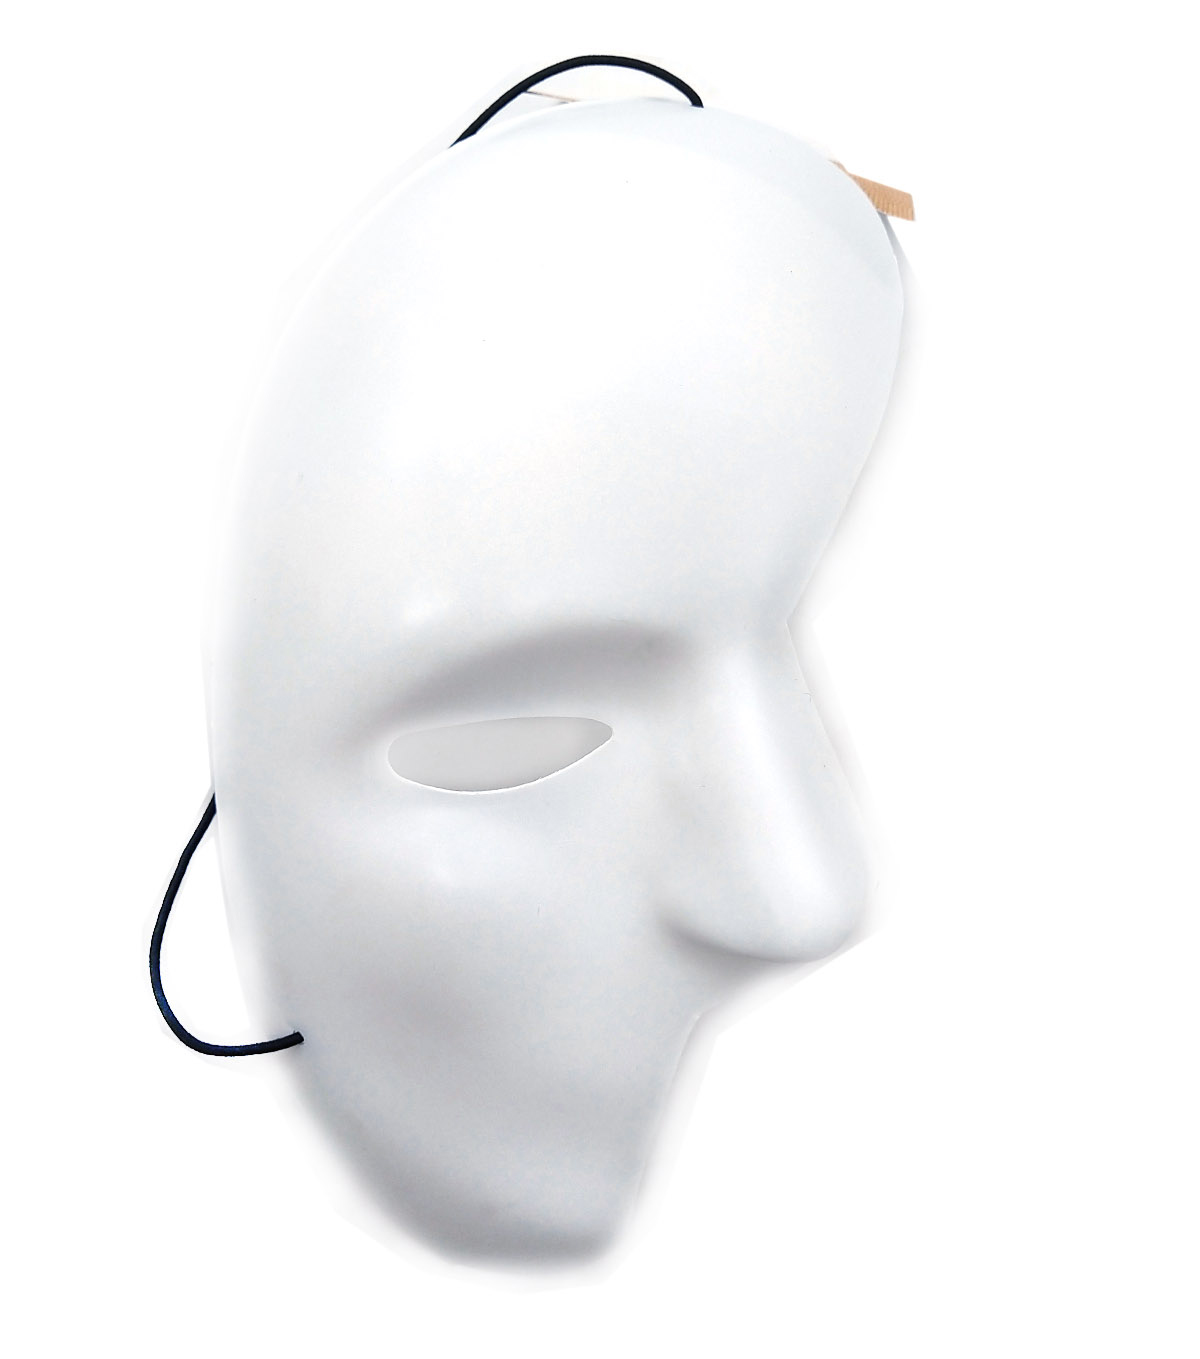 Mask It Half Face 4 5 X 8 25 11 4 X 21 Cm White With Black